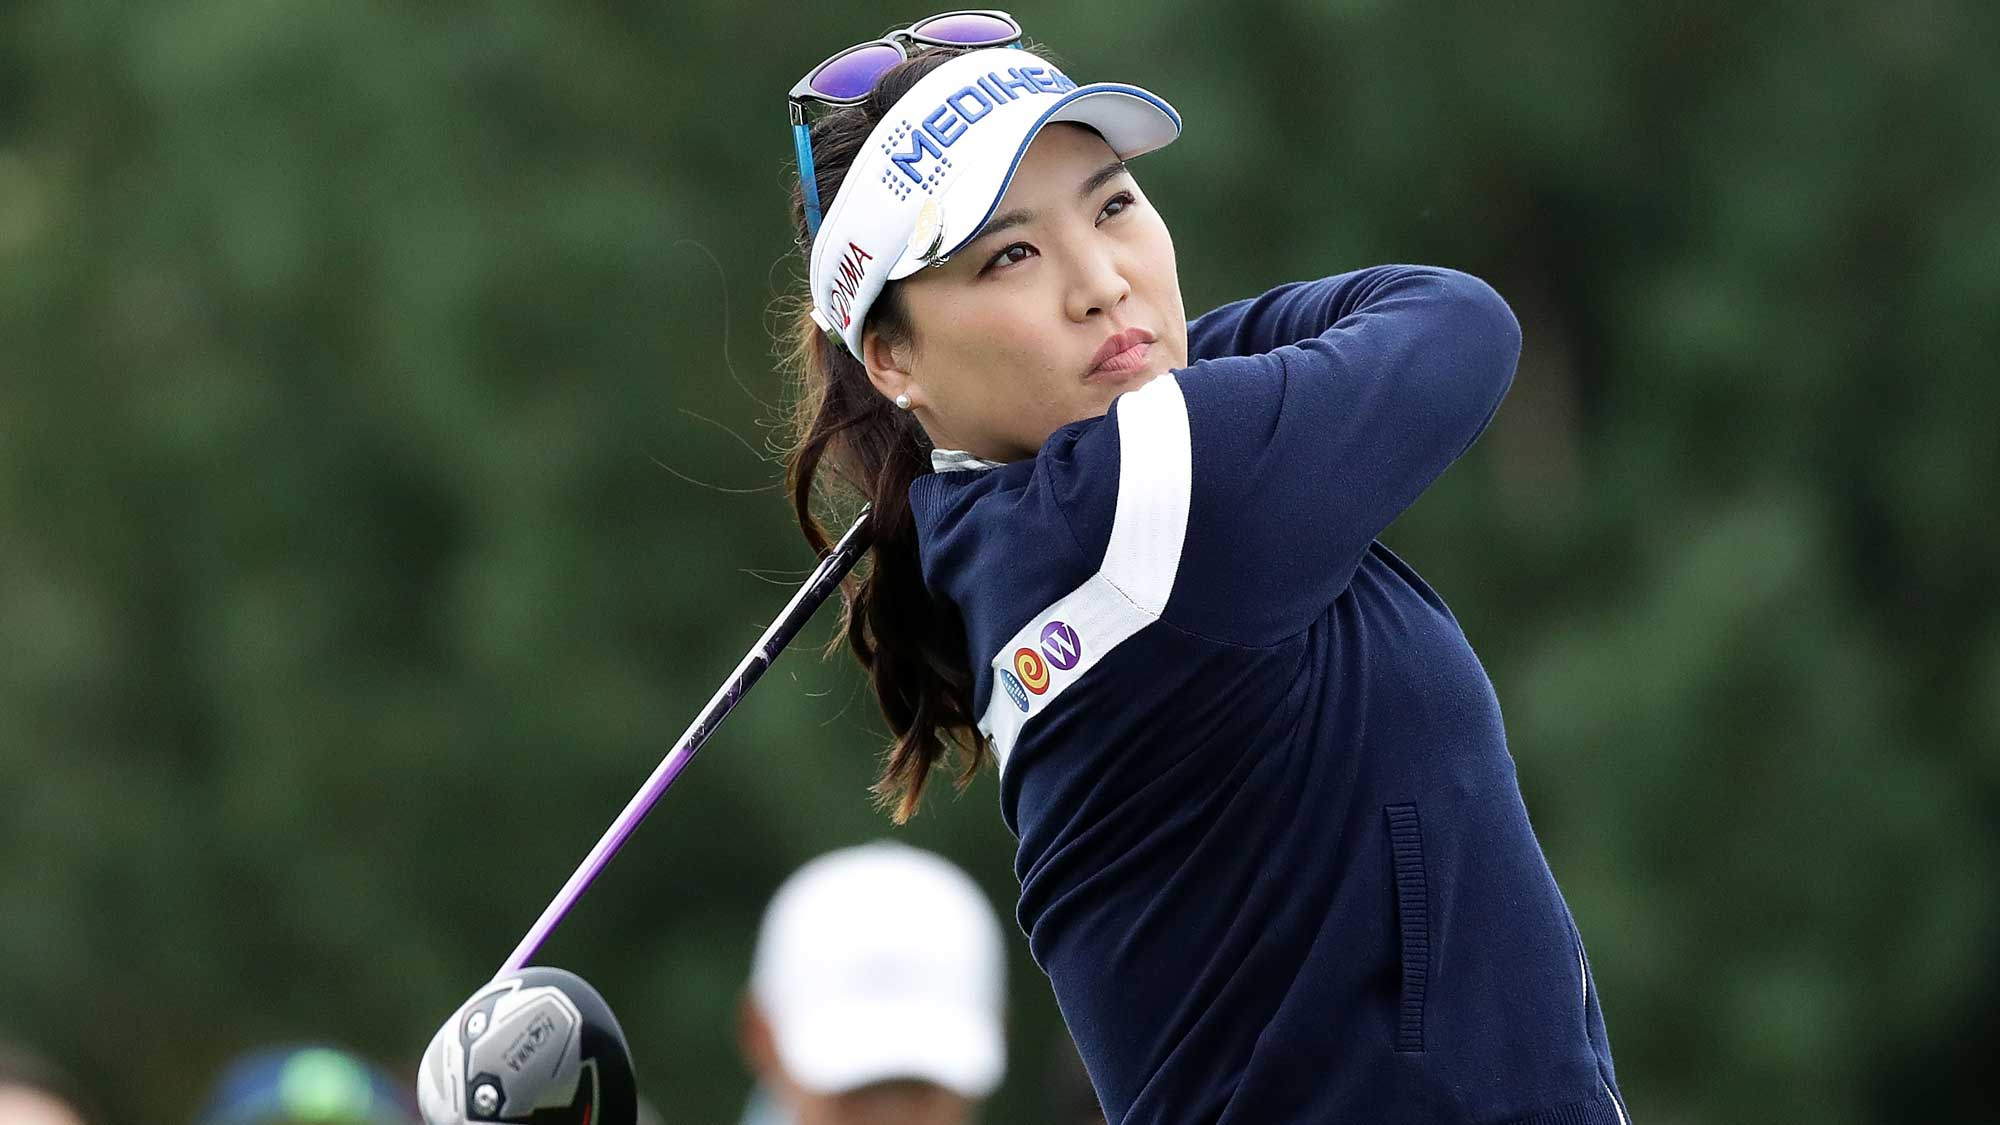 So-Yeon Ryu of South Korea plays a tee shot on the 2nd hole during the first round of the LPGA KEB Hana Bank Championship